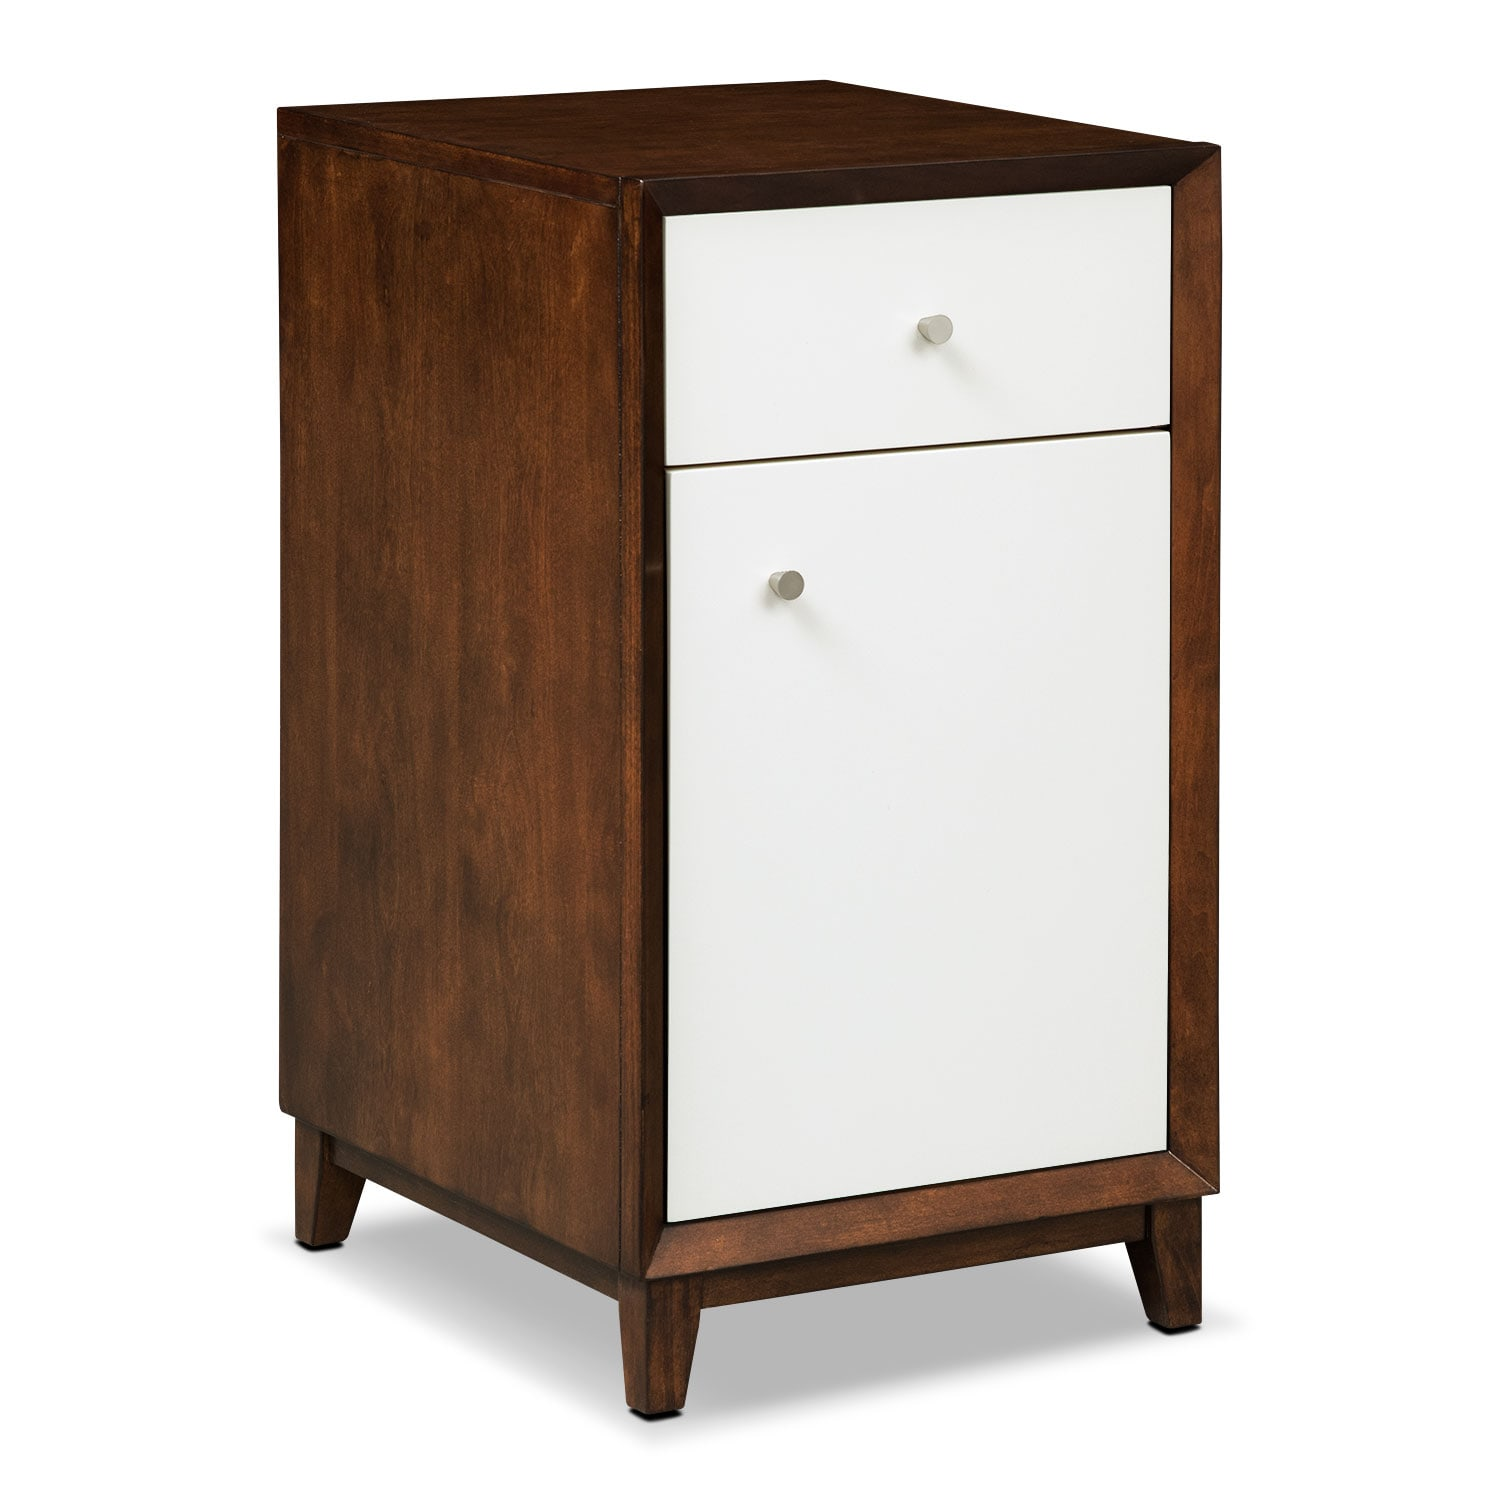 Oslo Door File Cabinet - White